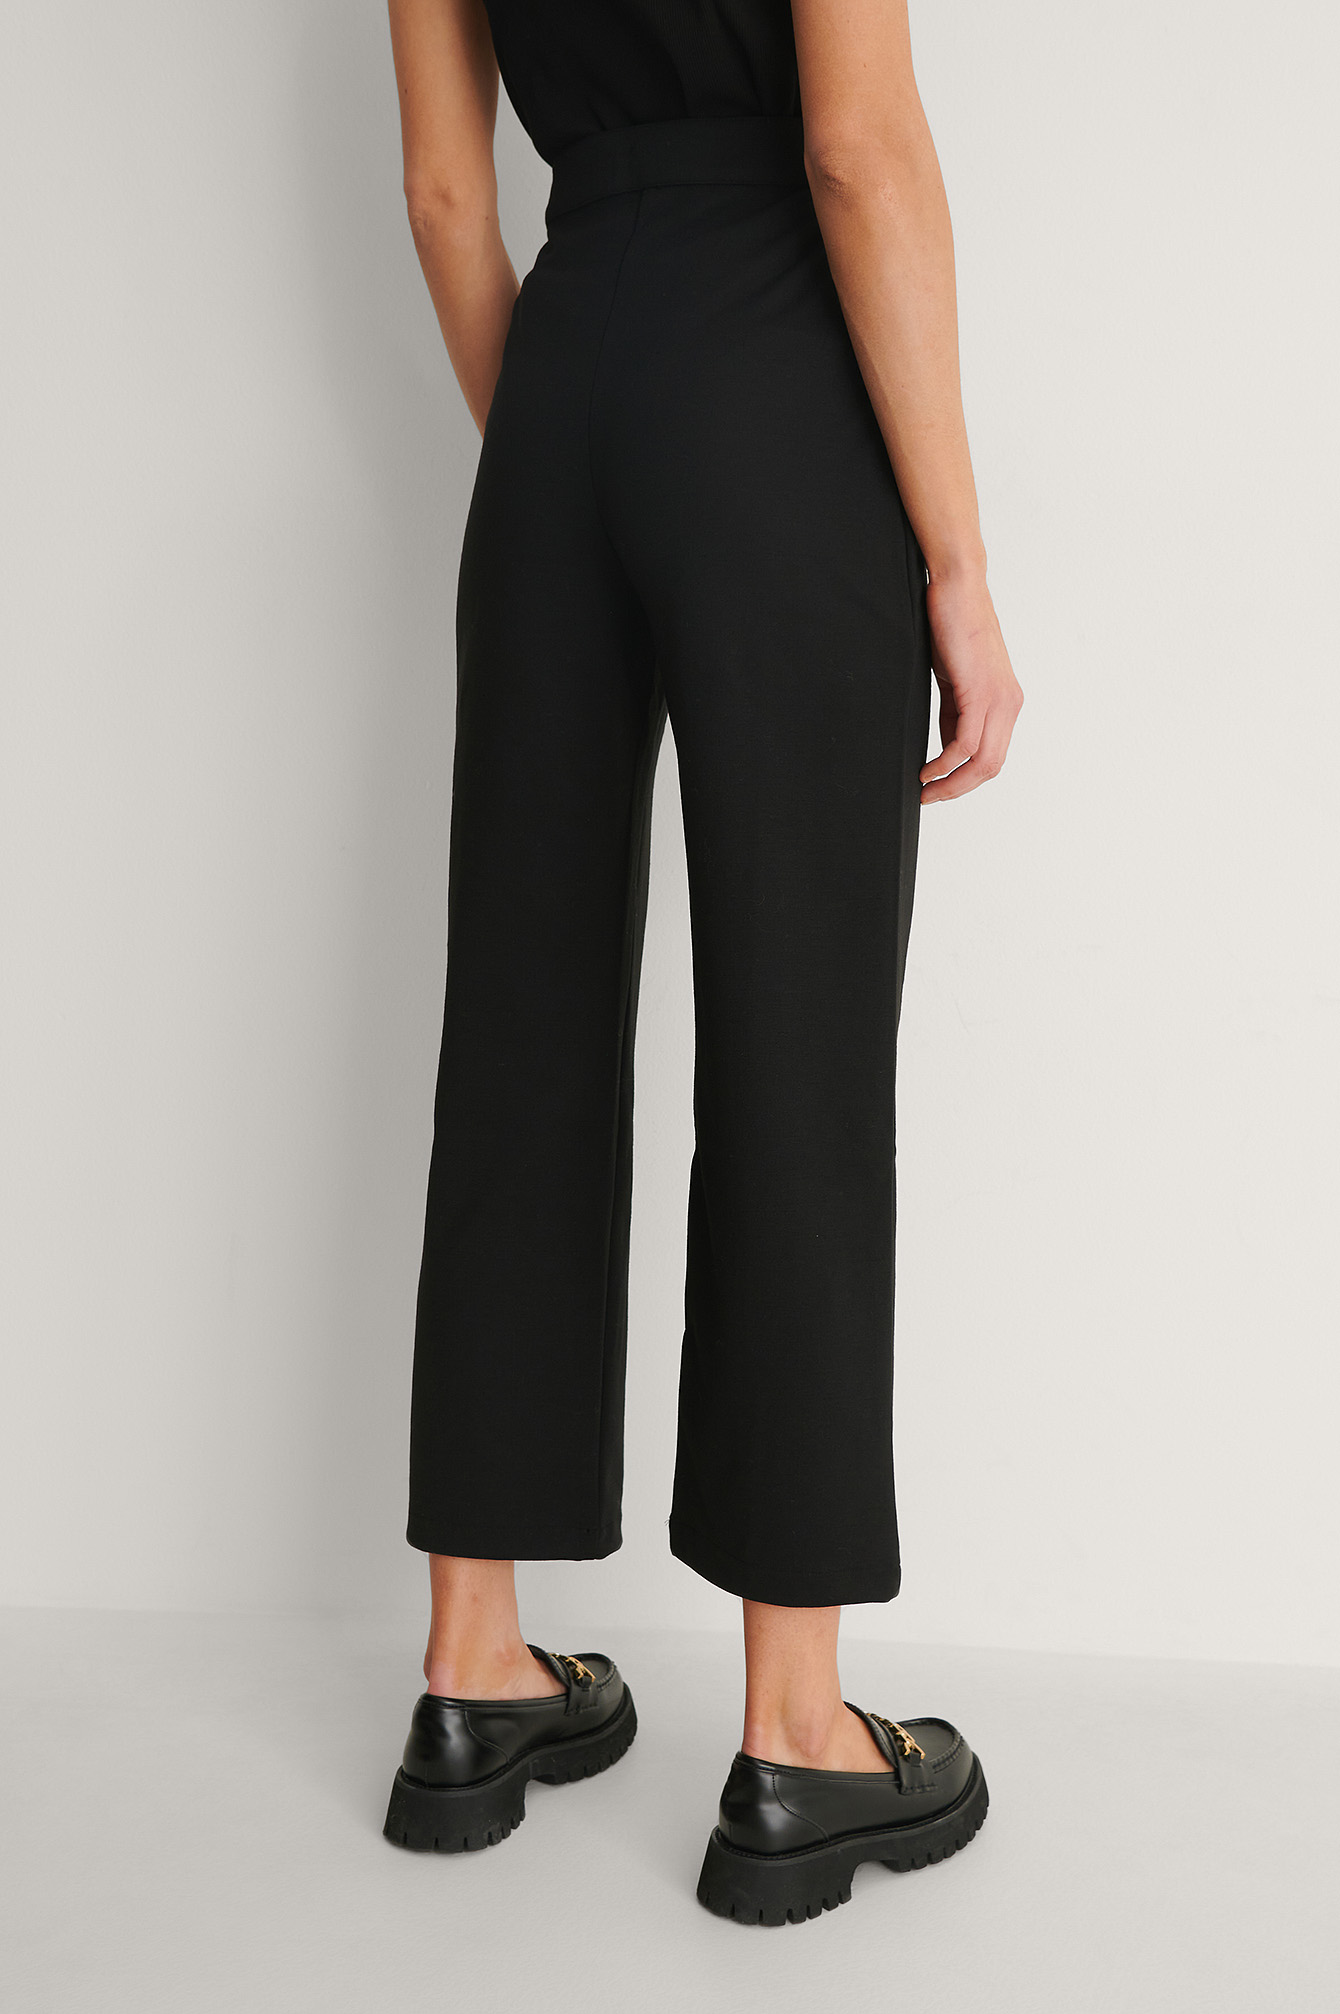 Black Pantalon Droit